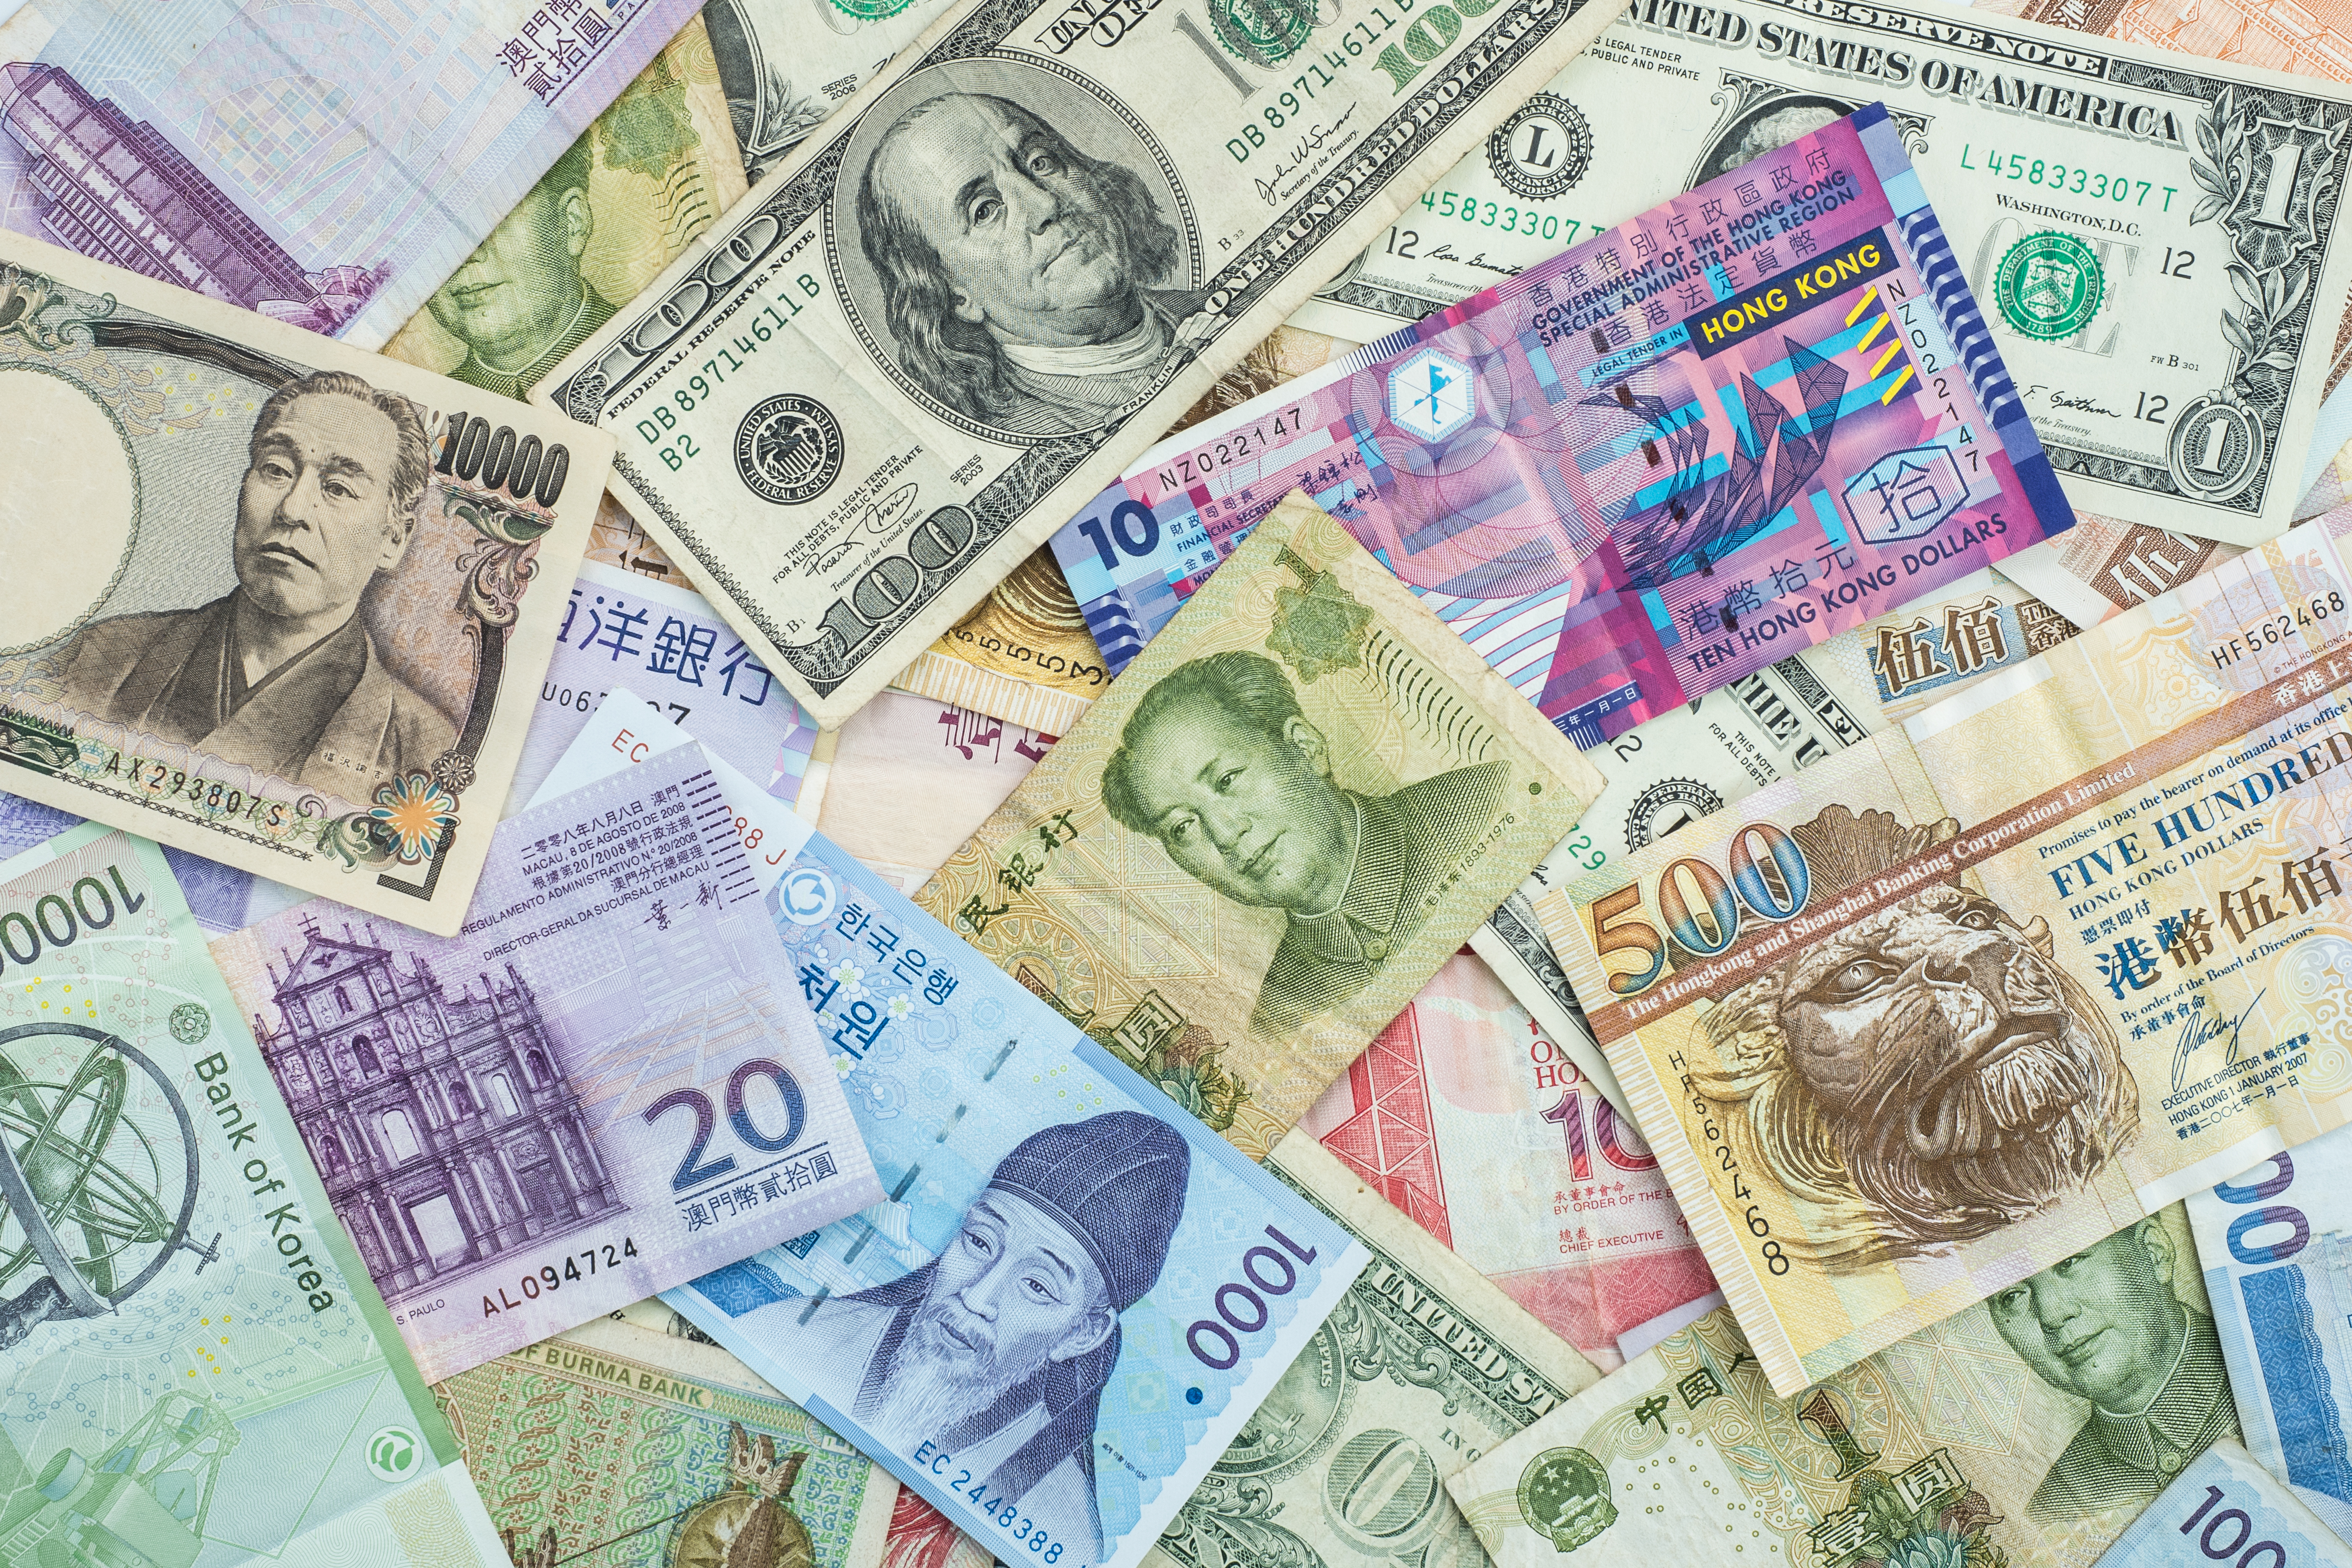 International banknote background for global currencies concept for money exchange business